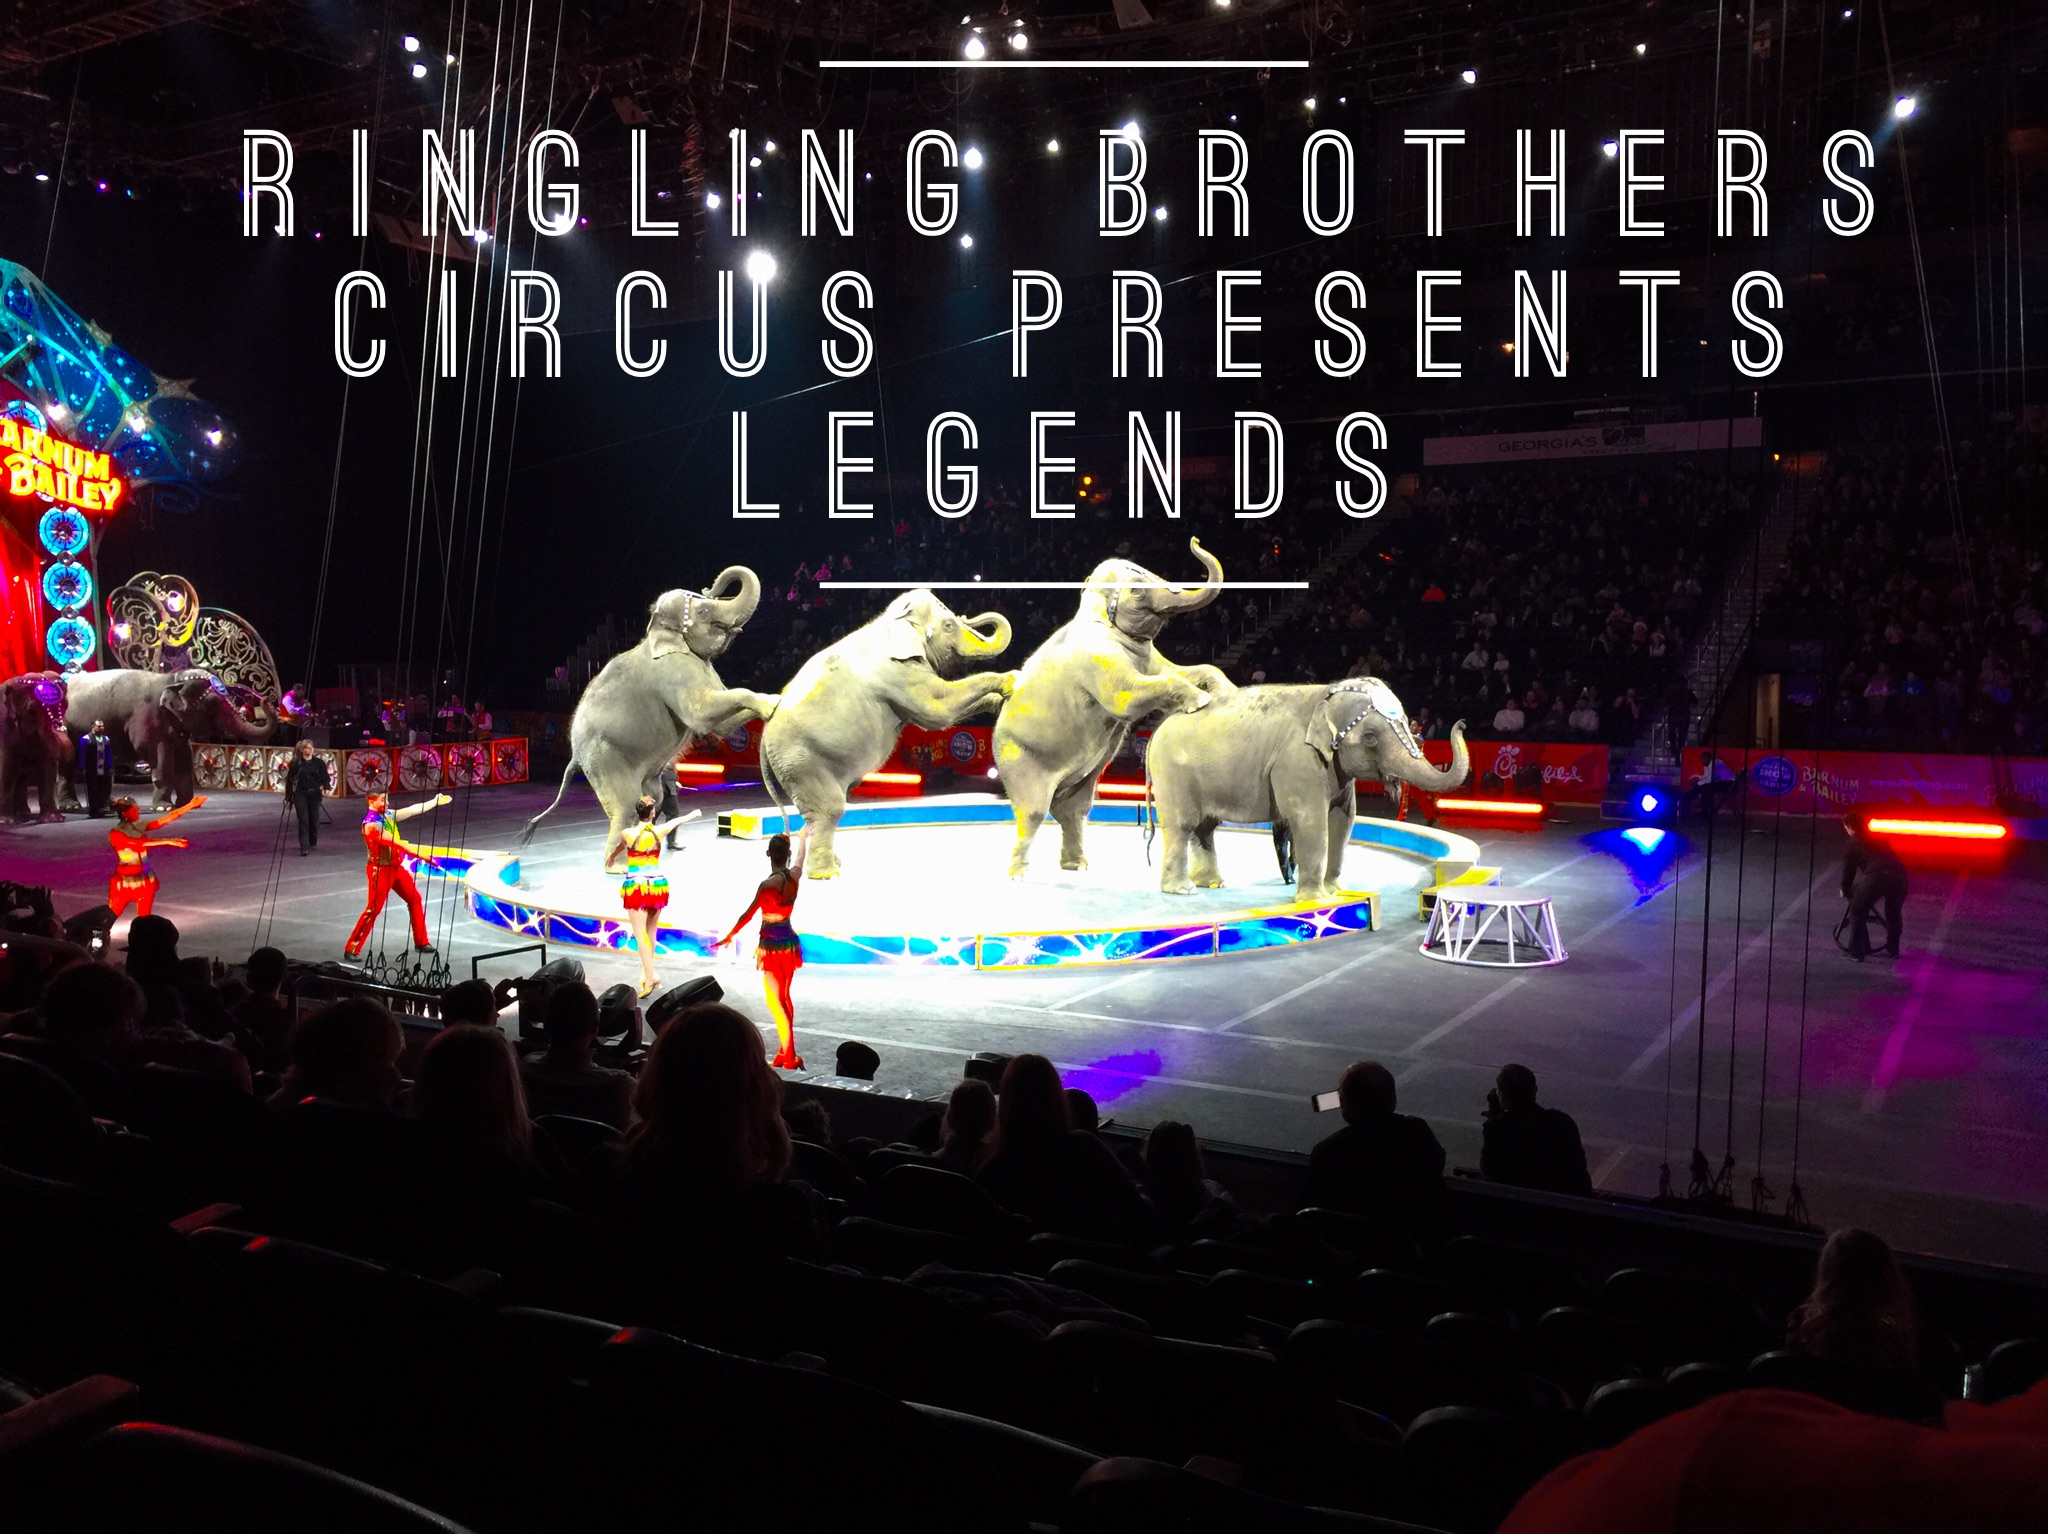 Ringling Brothers Circus Legends and Pre-Show